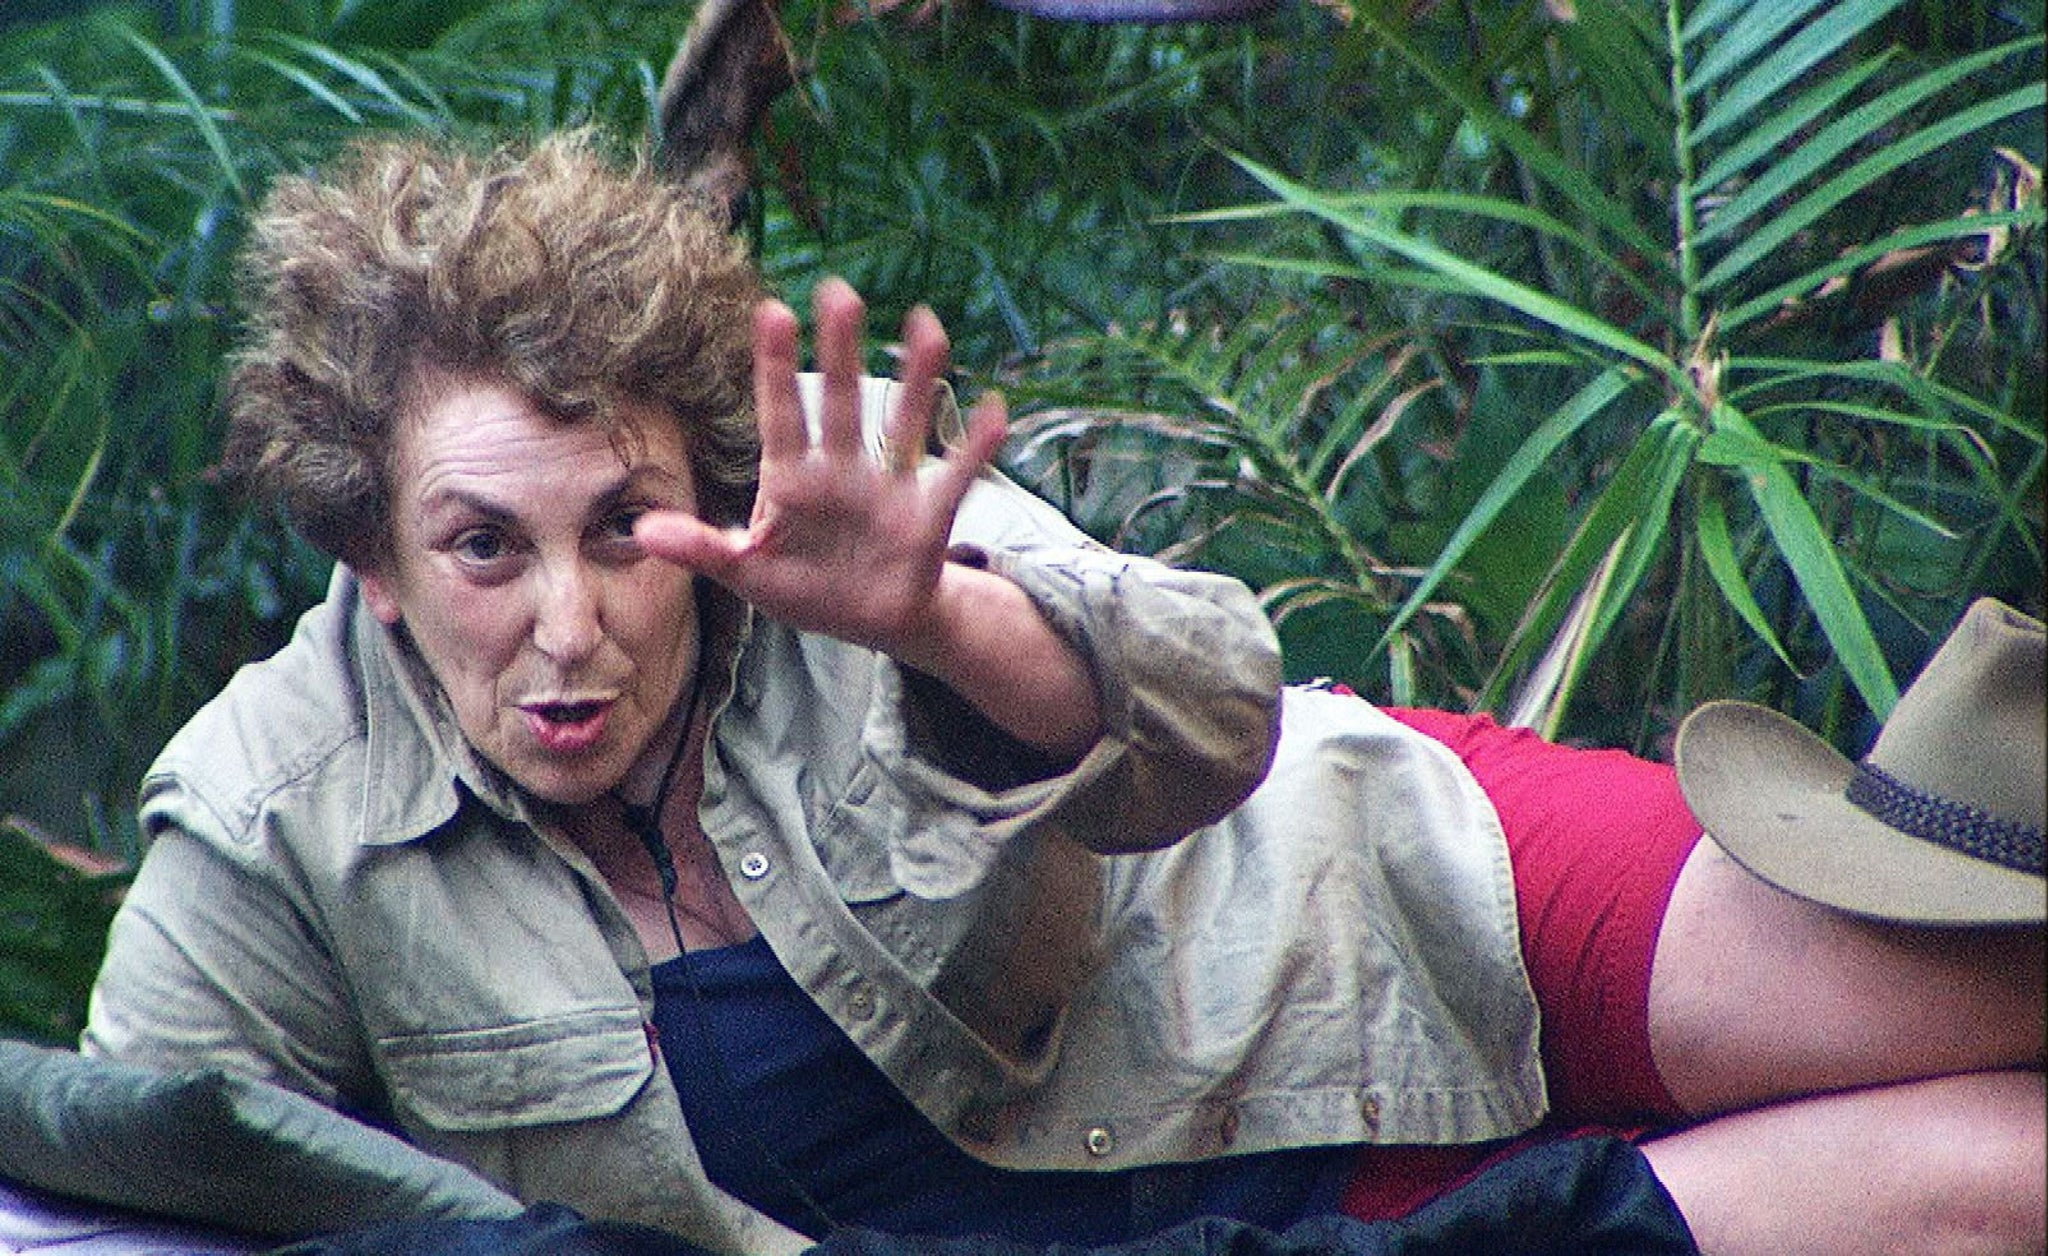 edwina currie 1980edwina currie eggs, edwina currie diaries, edwina currie daughter, edwina currie hell's kitchen, edwina currie net worth, edwina currie twitter, edwina currie resignation, edwina currie books, edwina currie brexit, edwina currie husband, edwina currie come dine with me, edwina currie 2016, edwina currie photos, edwina currie 1980, edwina currie images, edwina currie guernsey, edwina currie quotes, edwina currie author, edwina currie vs gordon ramsay, edwina currie now